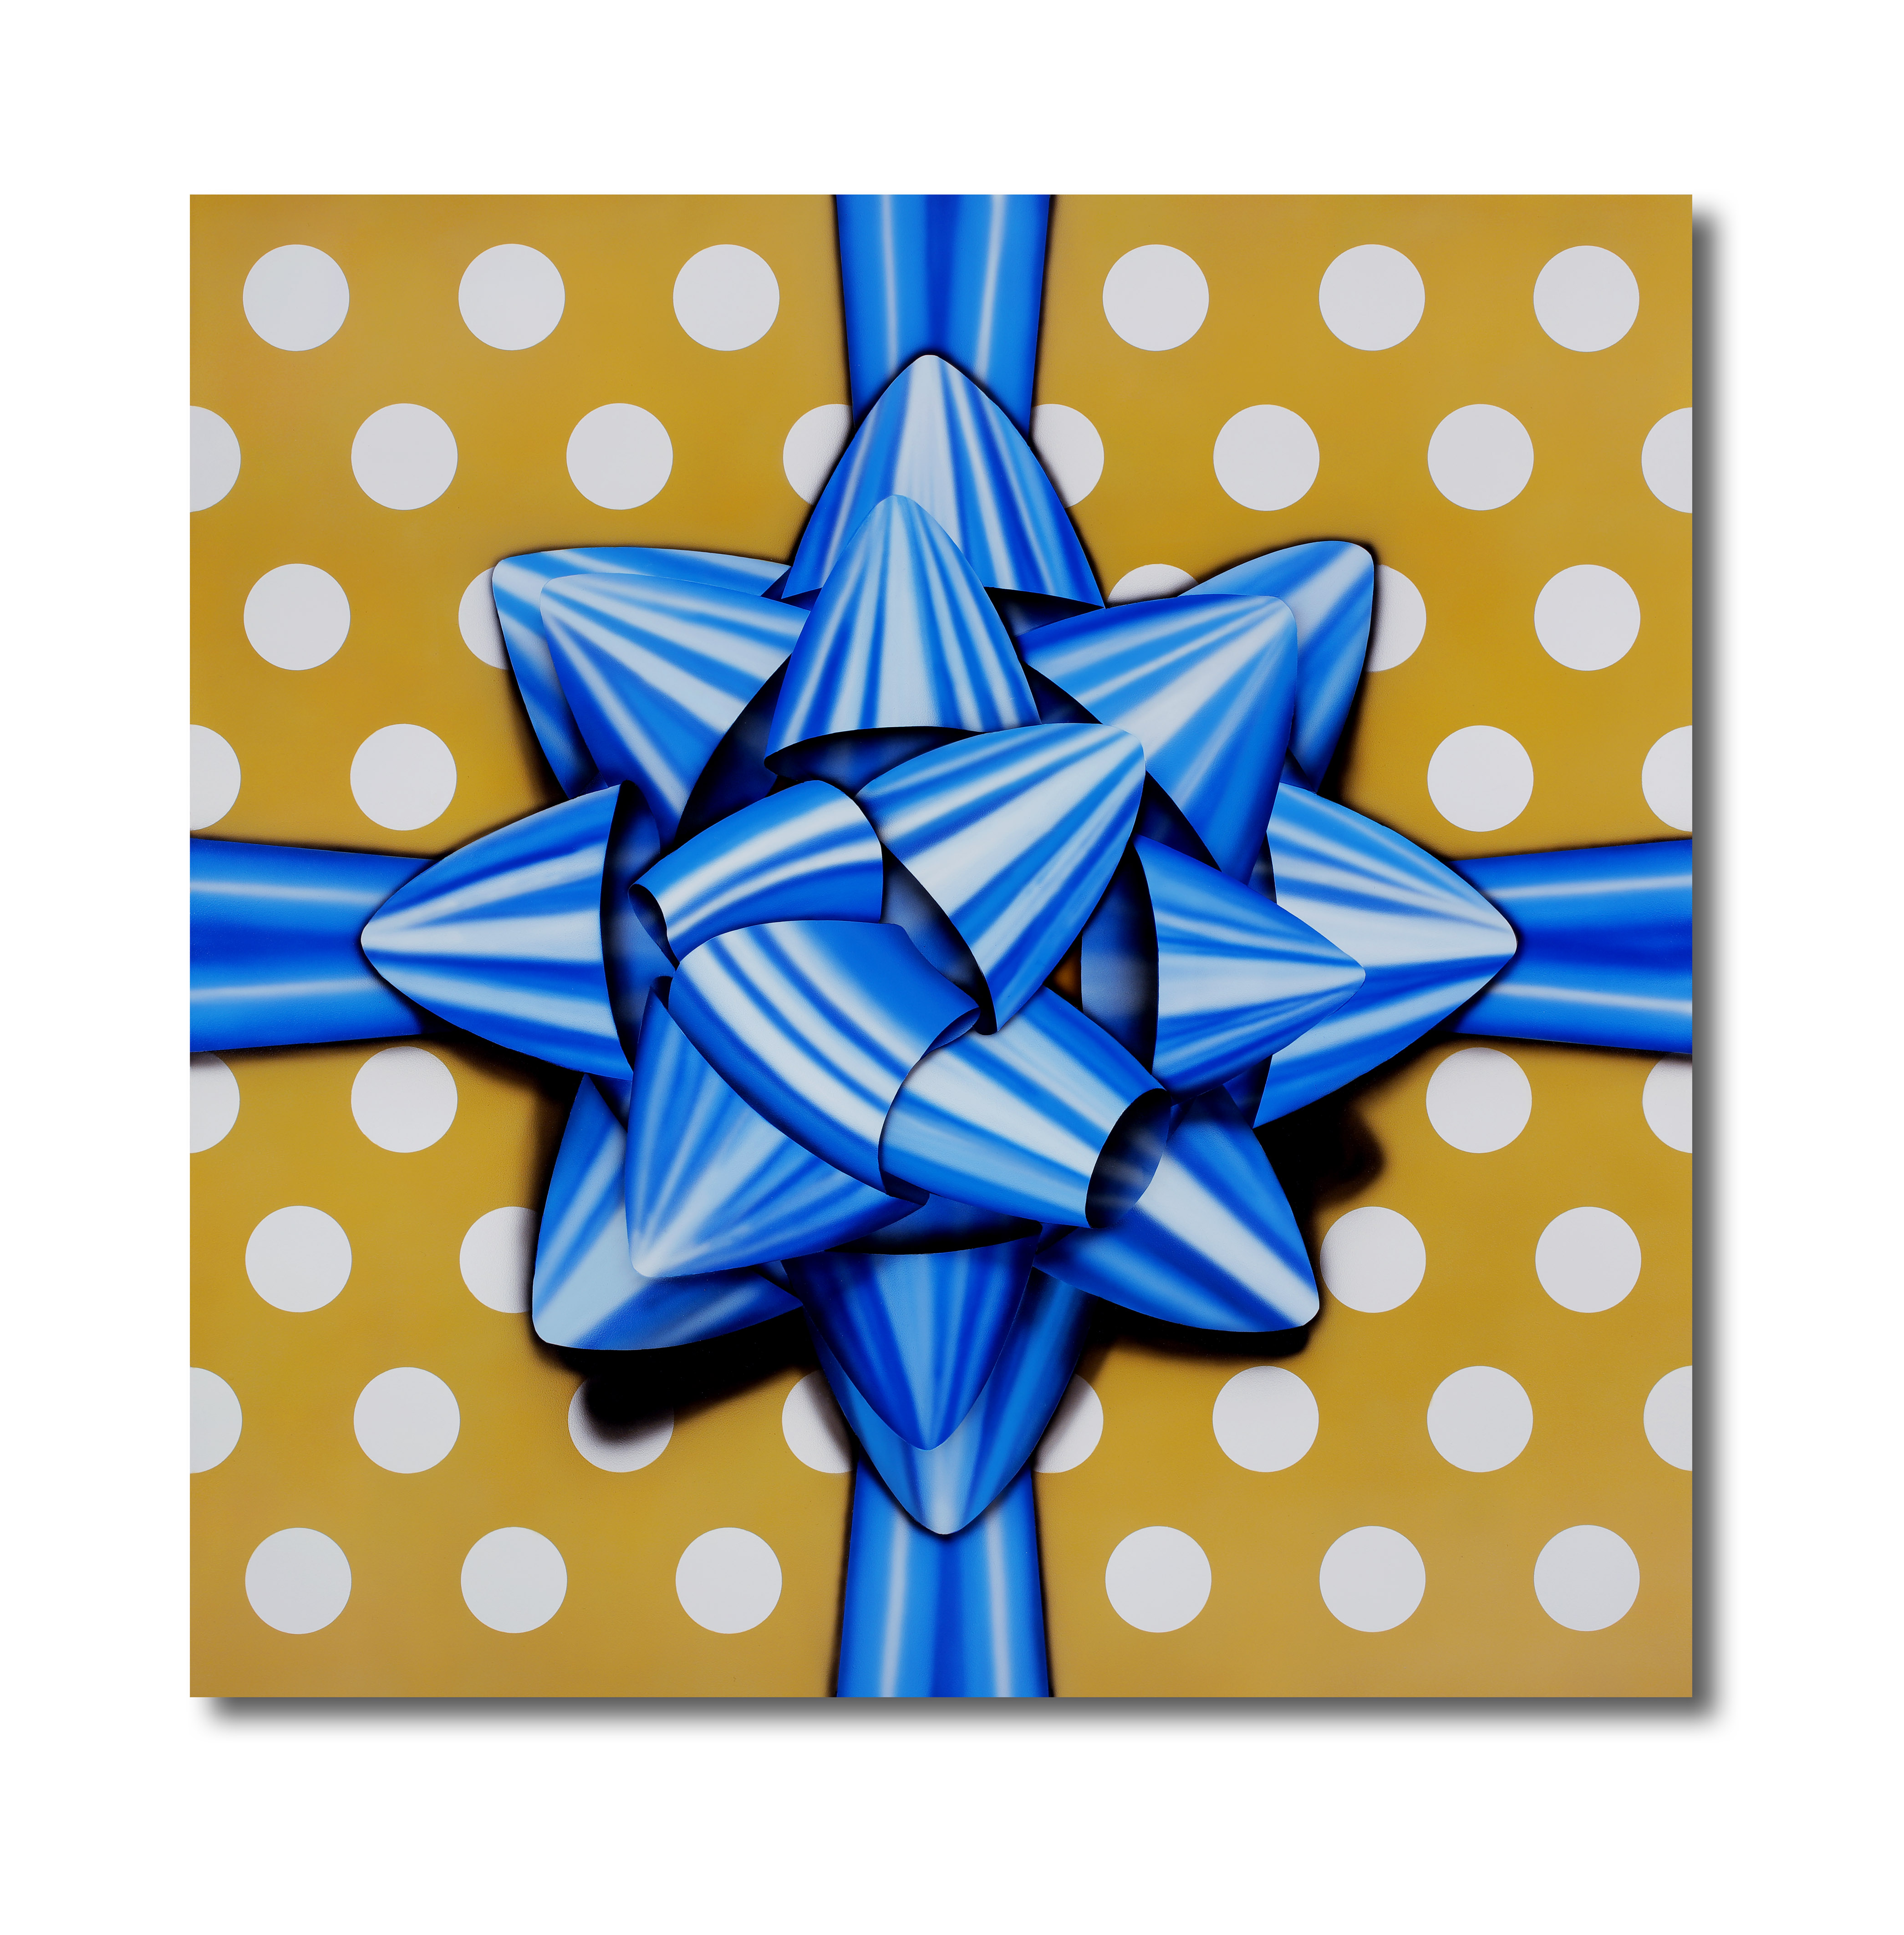 "Title: Blue Star Artist: Mark Travers Year: 2016 Medium: Acrylic on wood panel Size: 35.25"" x 35.25"""